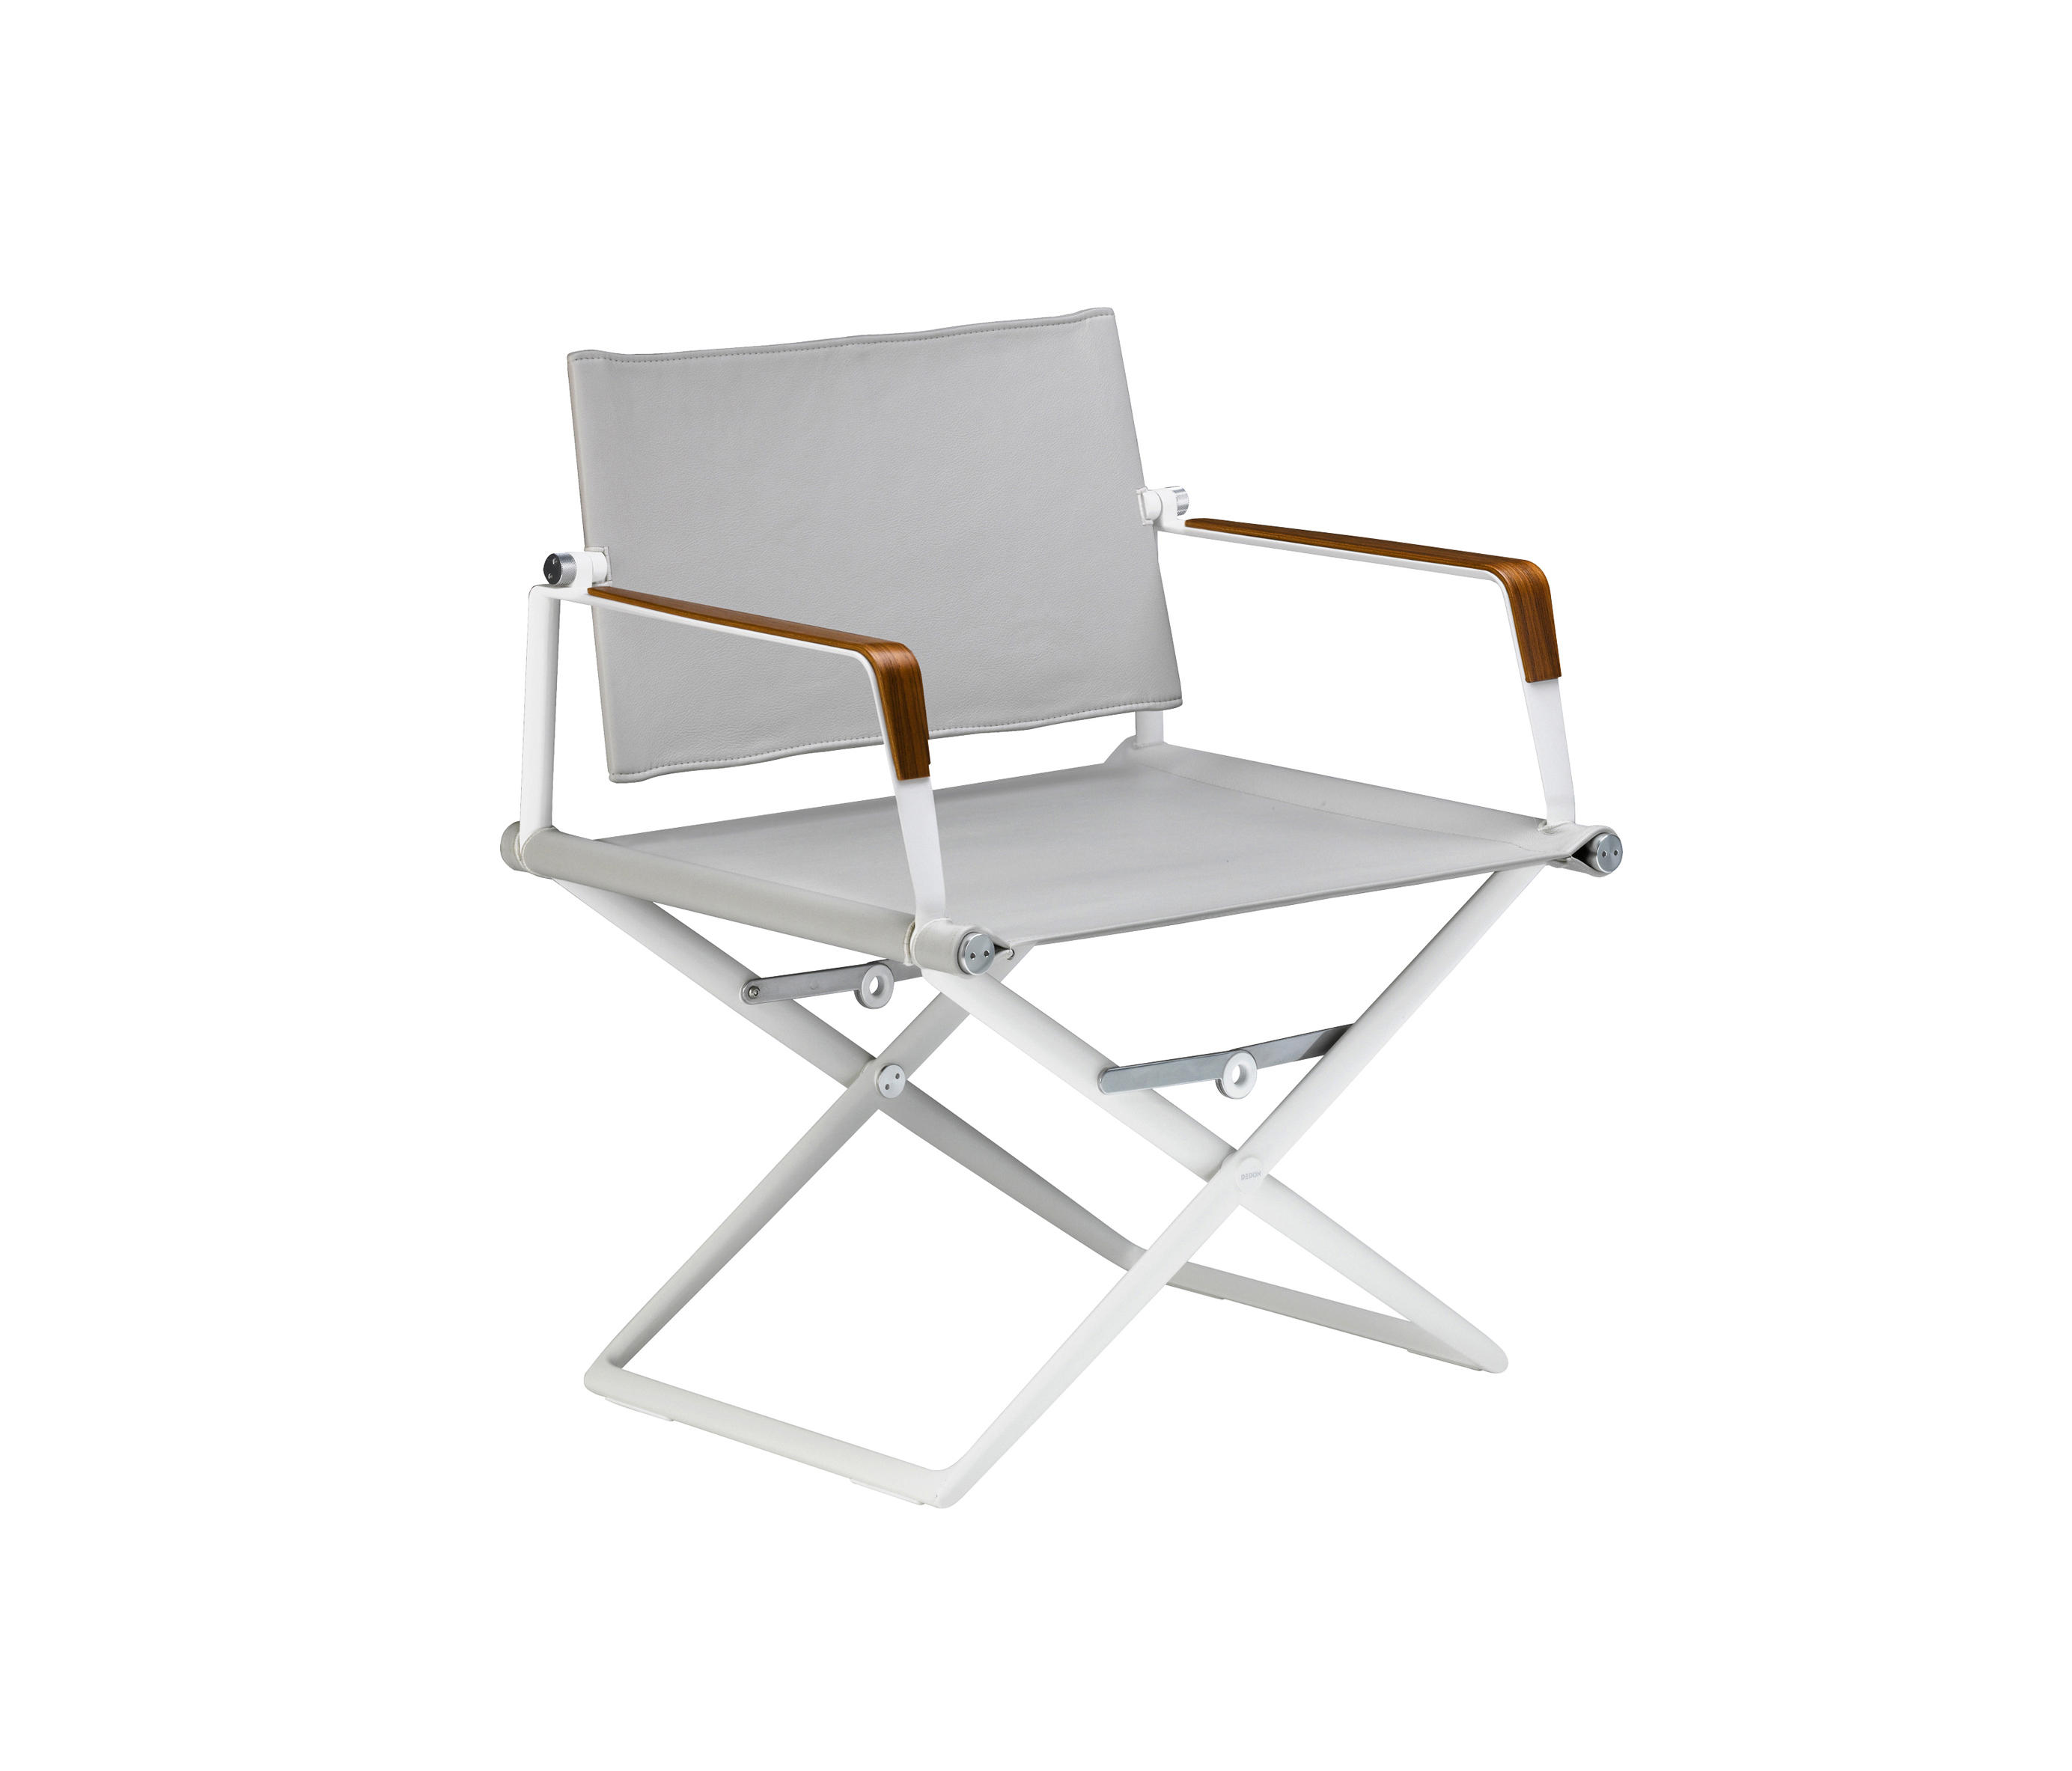 SEAX CHAIR Garden chairs from DEDON